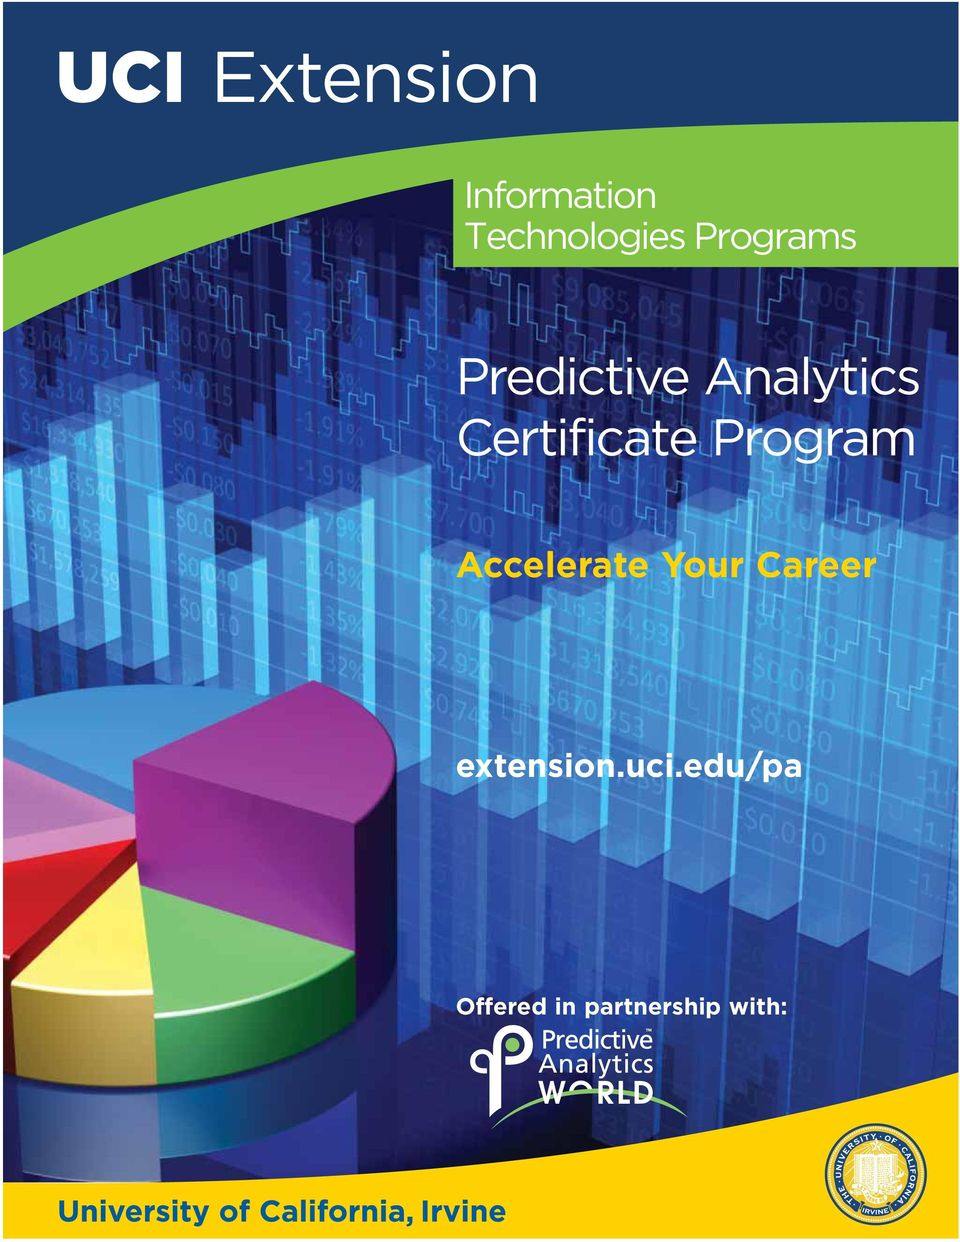 Certificate Program Accelerate